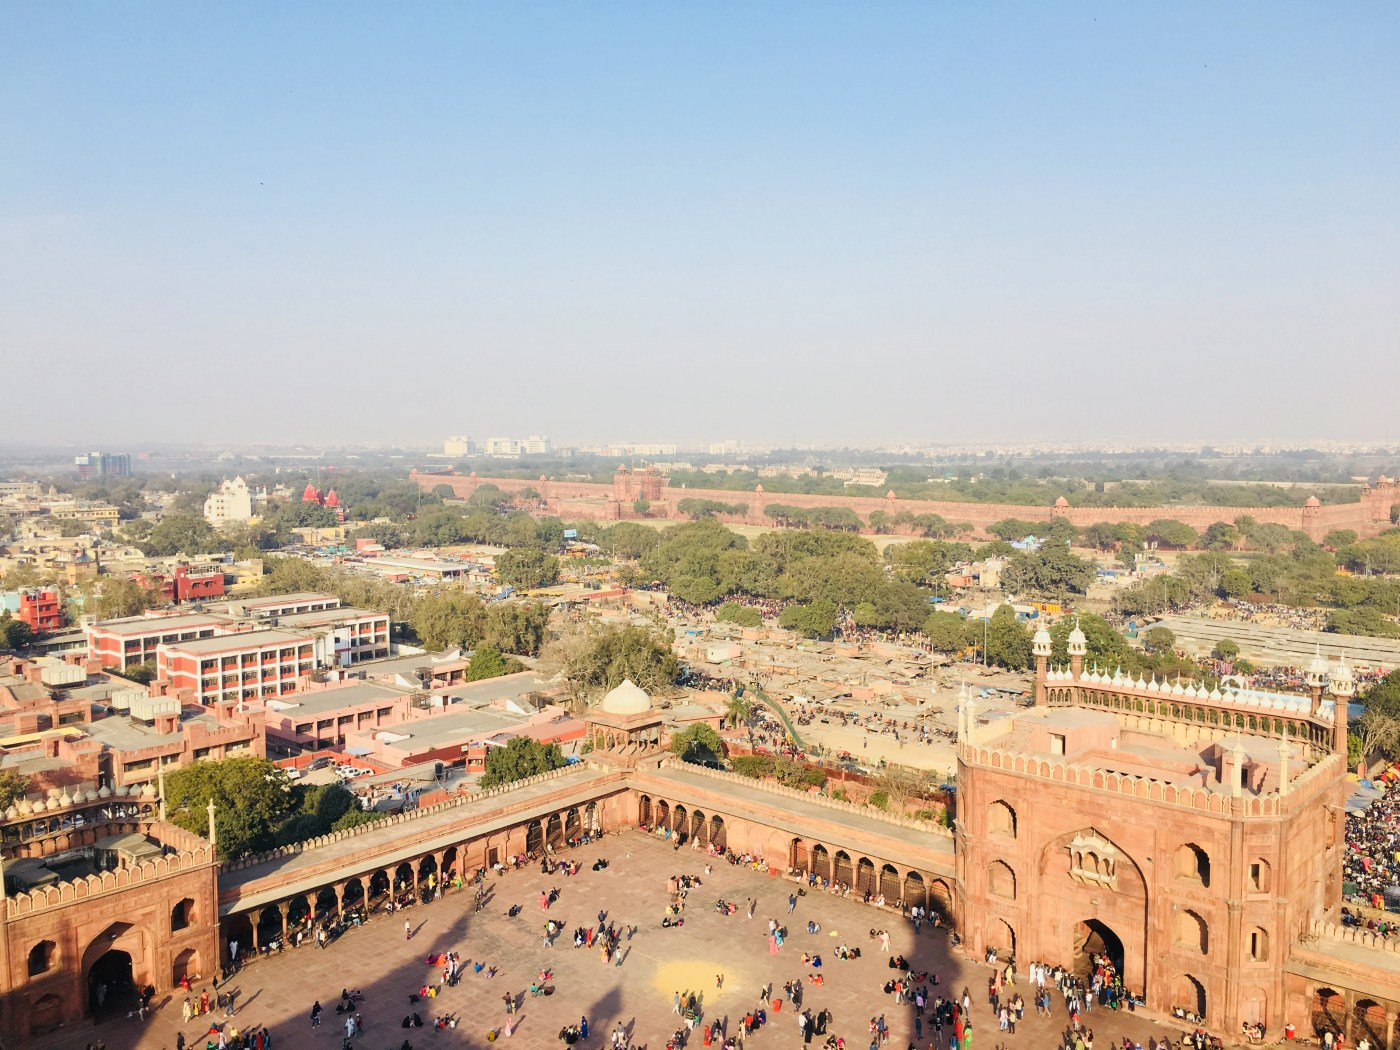 View of the courtyard from the Minaret of Jama Masjid | The largest mosque in India